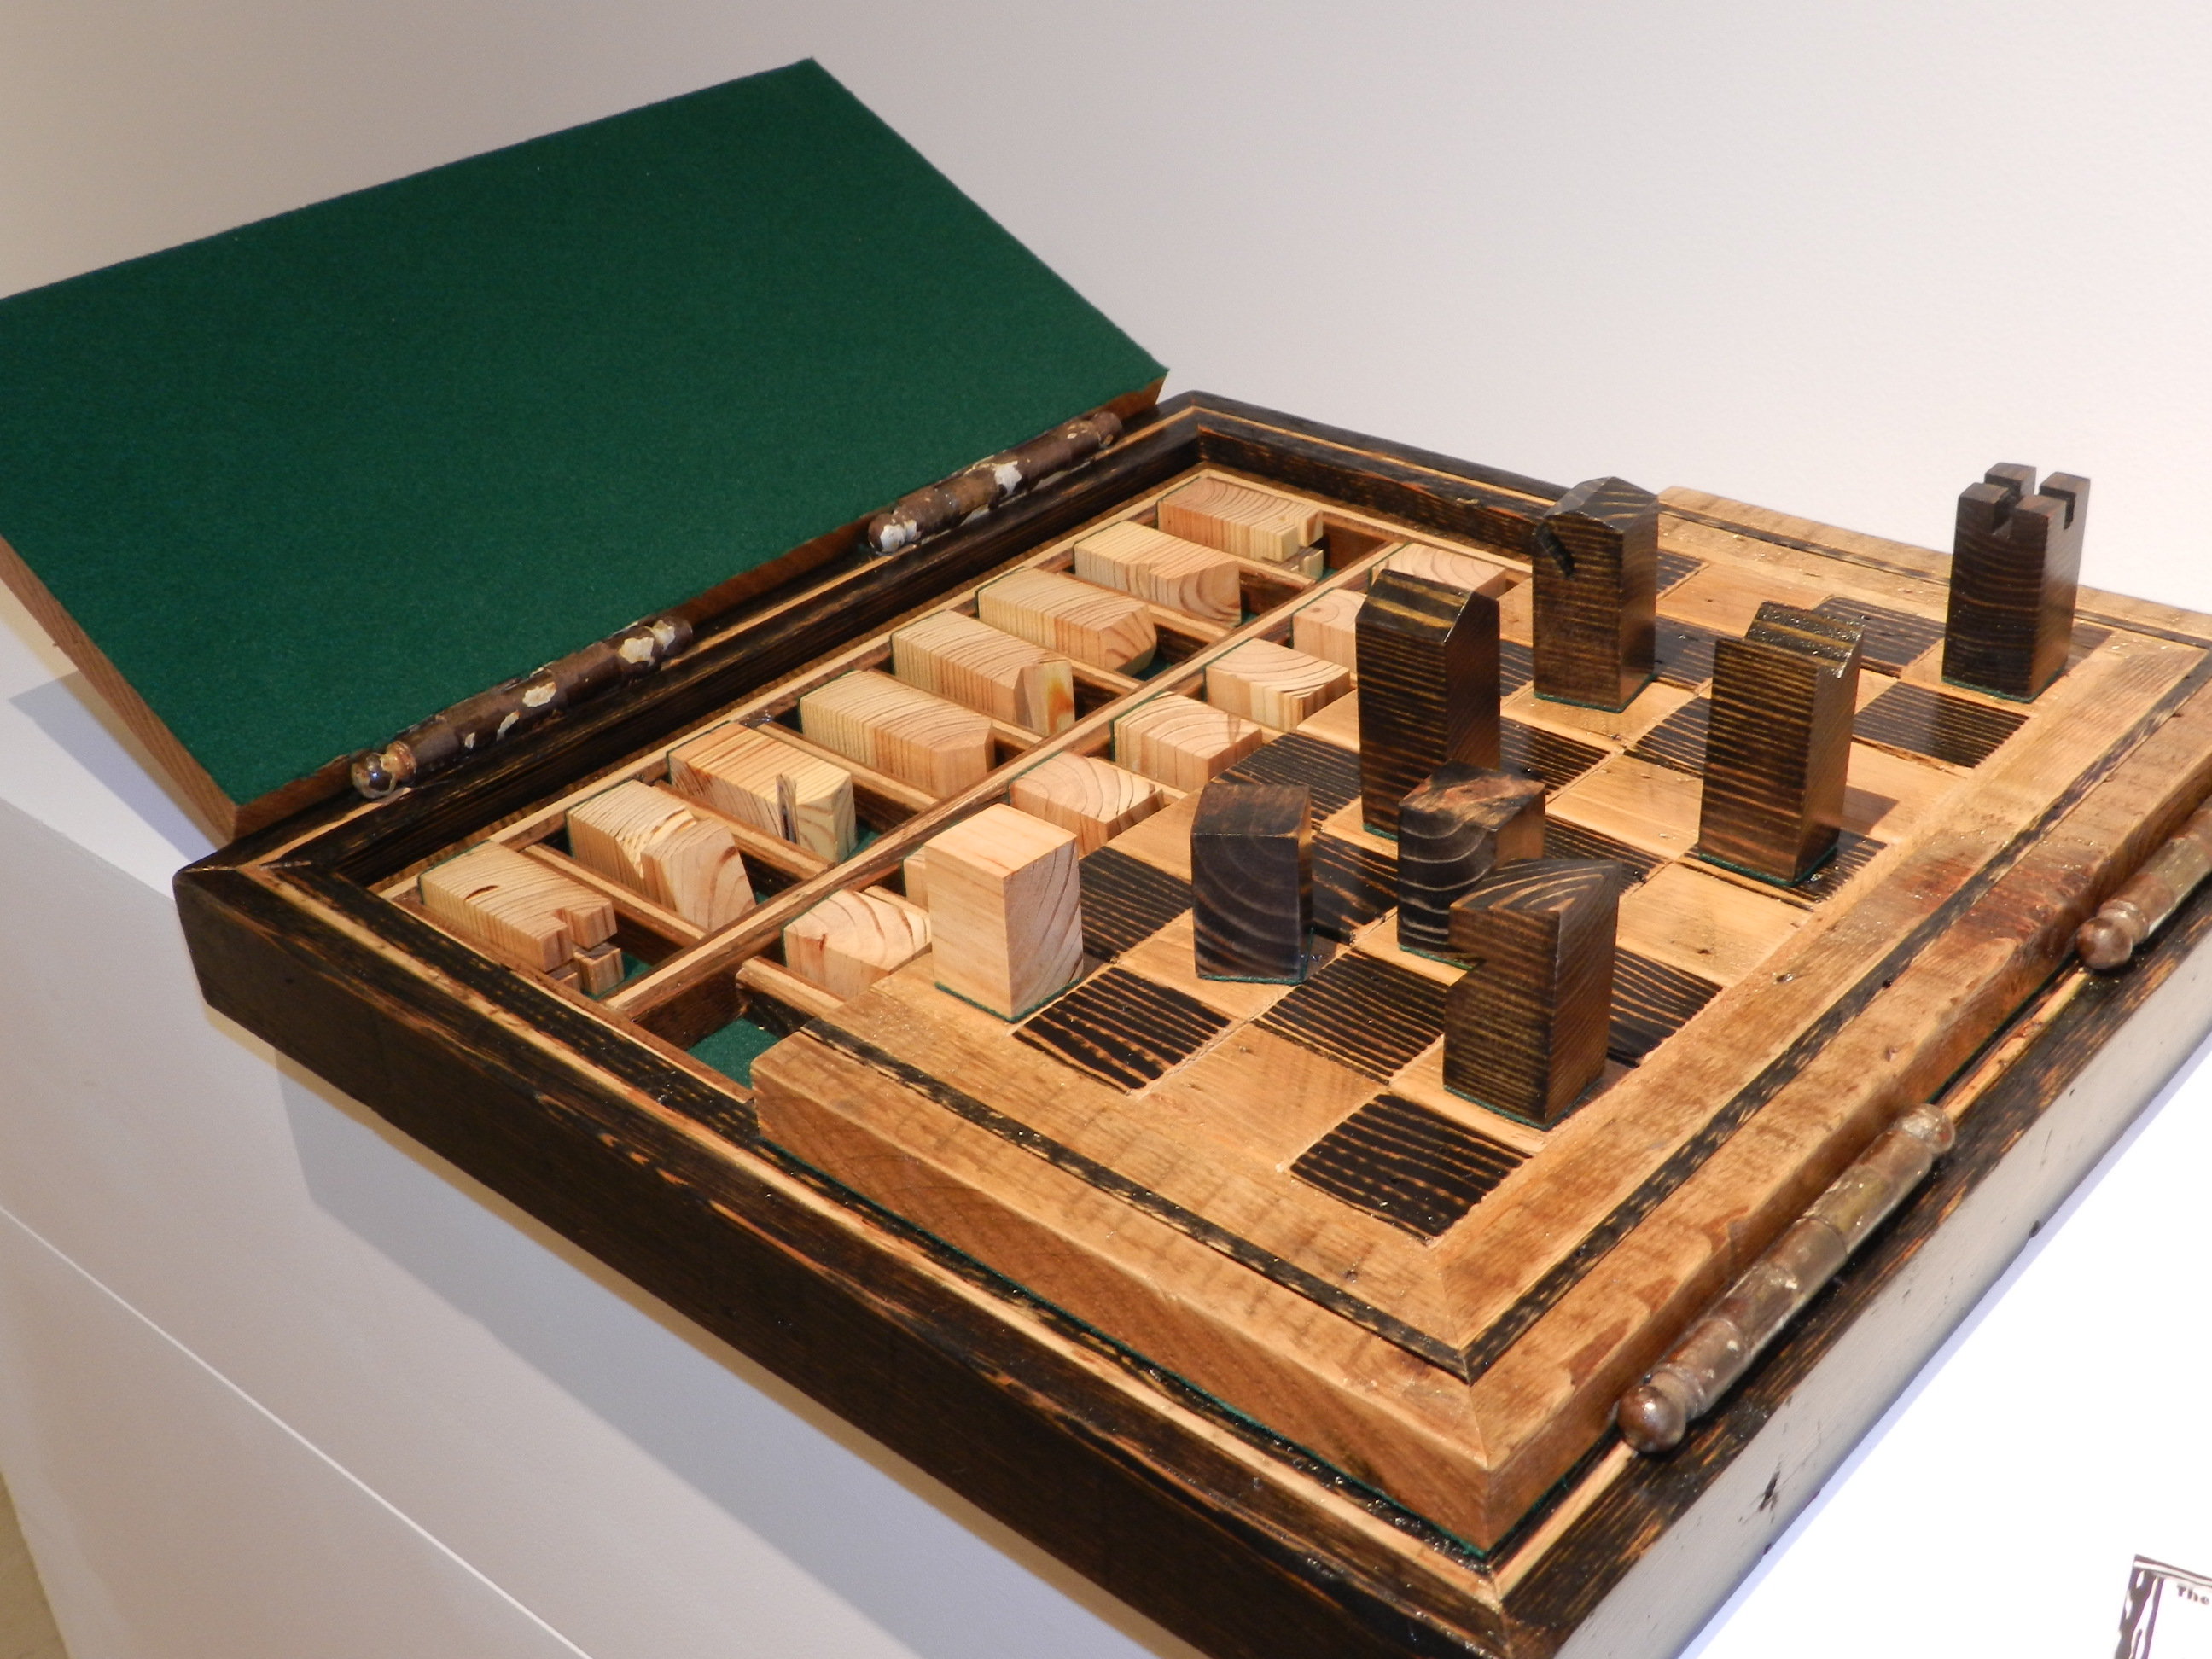 Diy Wood Chess Board Wooden Chess Pieces Free Download Wood Lathe Table Plans